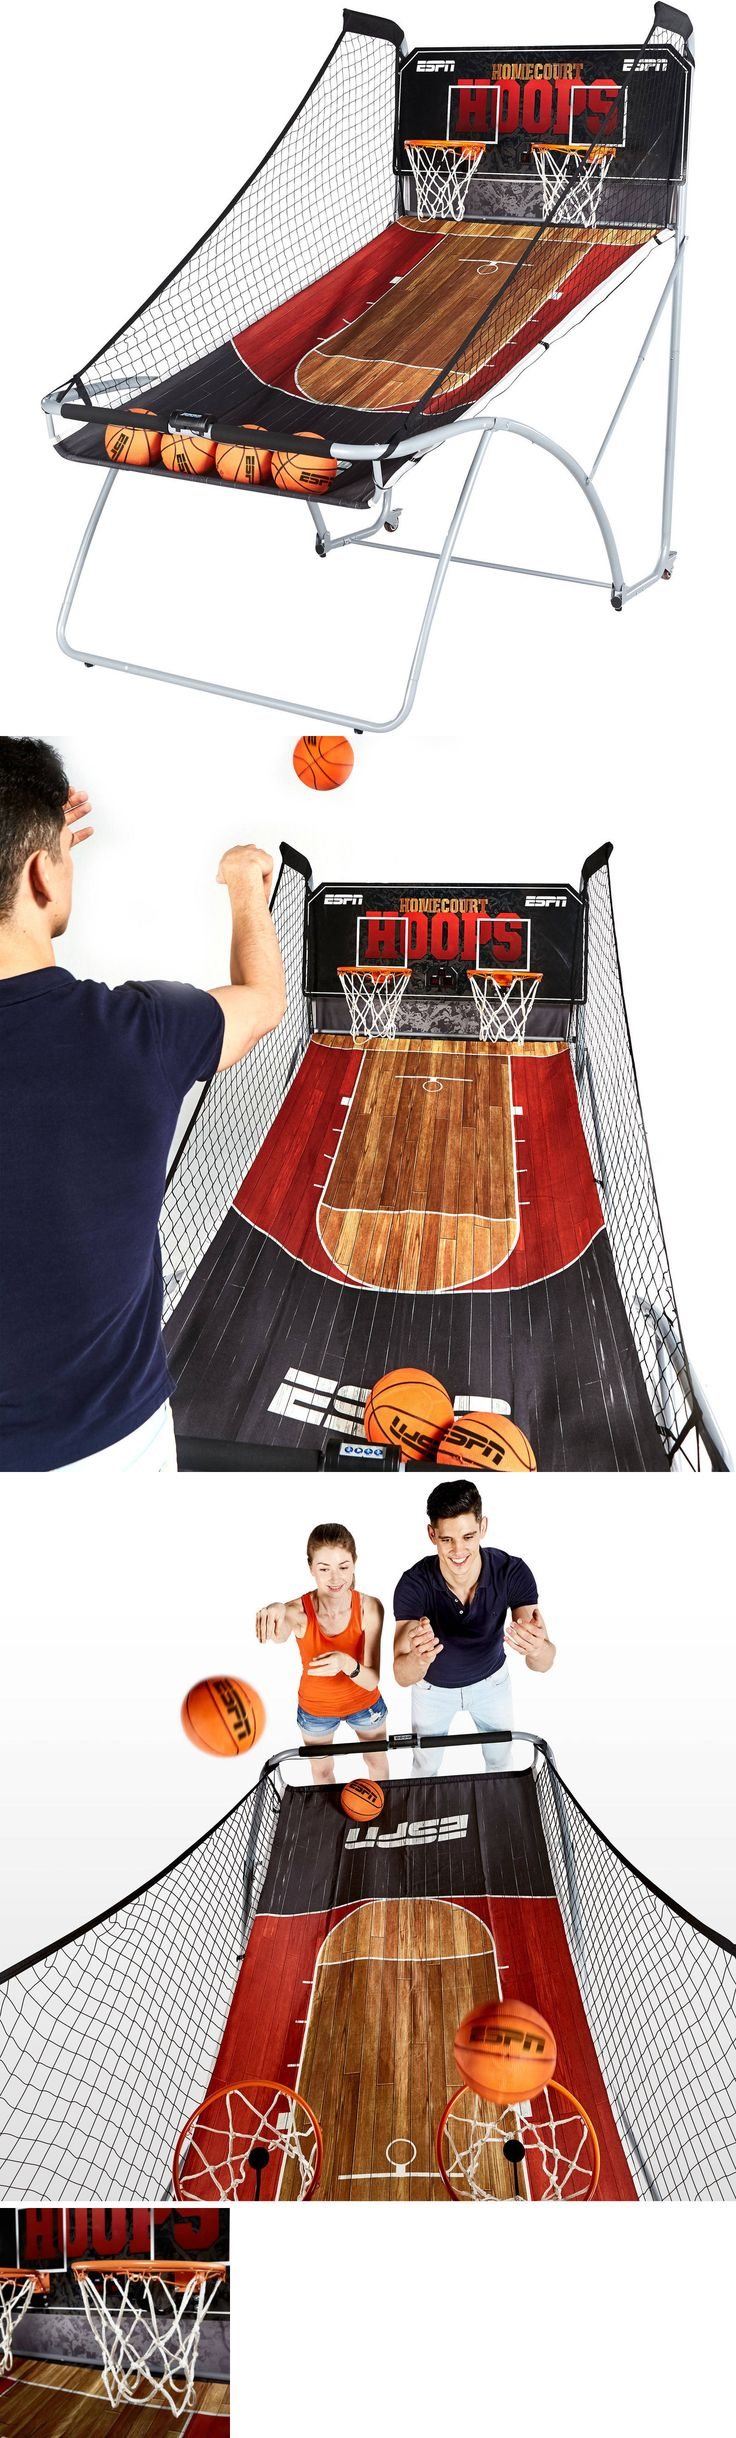 Other Indoor Games 36278: Espn Ez-Fold 2 Player Basketball Game Room Foldable Easy Storage Boys Girls New -> BUY IT NOW ONLY: $397.88 on eBay!